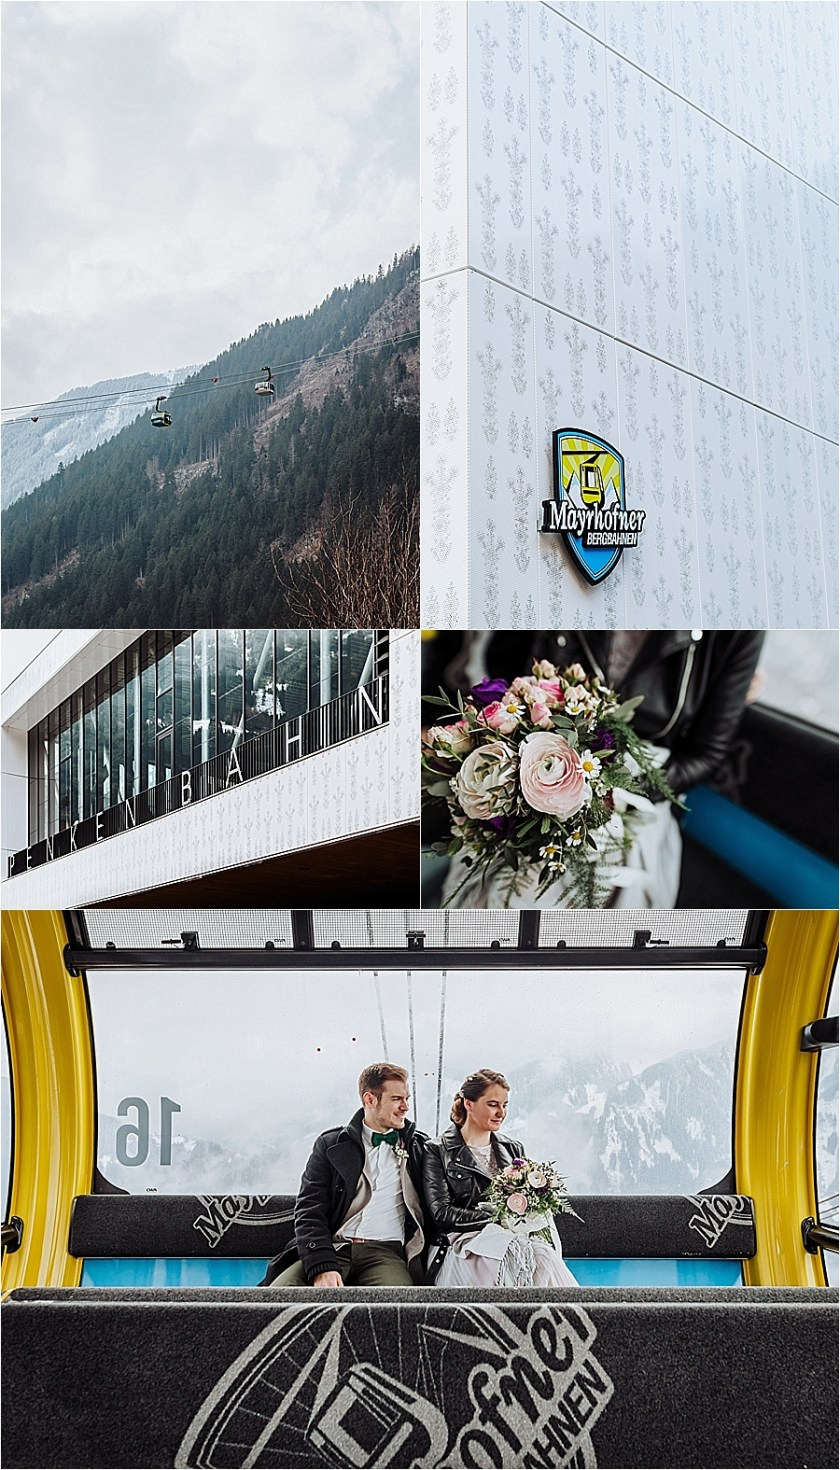 Bride & groom in the Penken cable car for their winter mountain elopement in Mayrhofen Austria by Wild Connections Photography